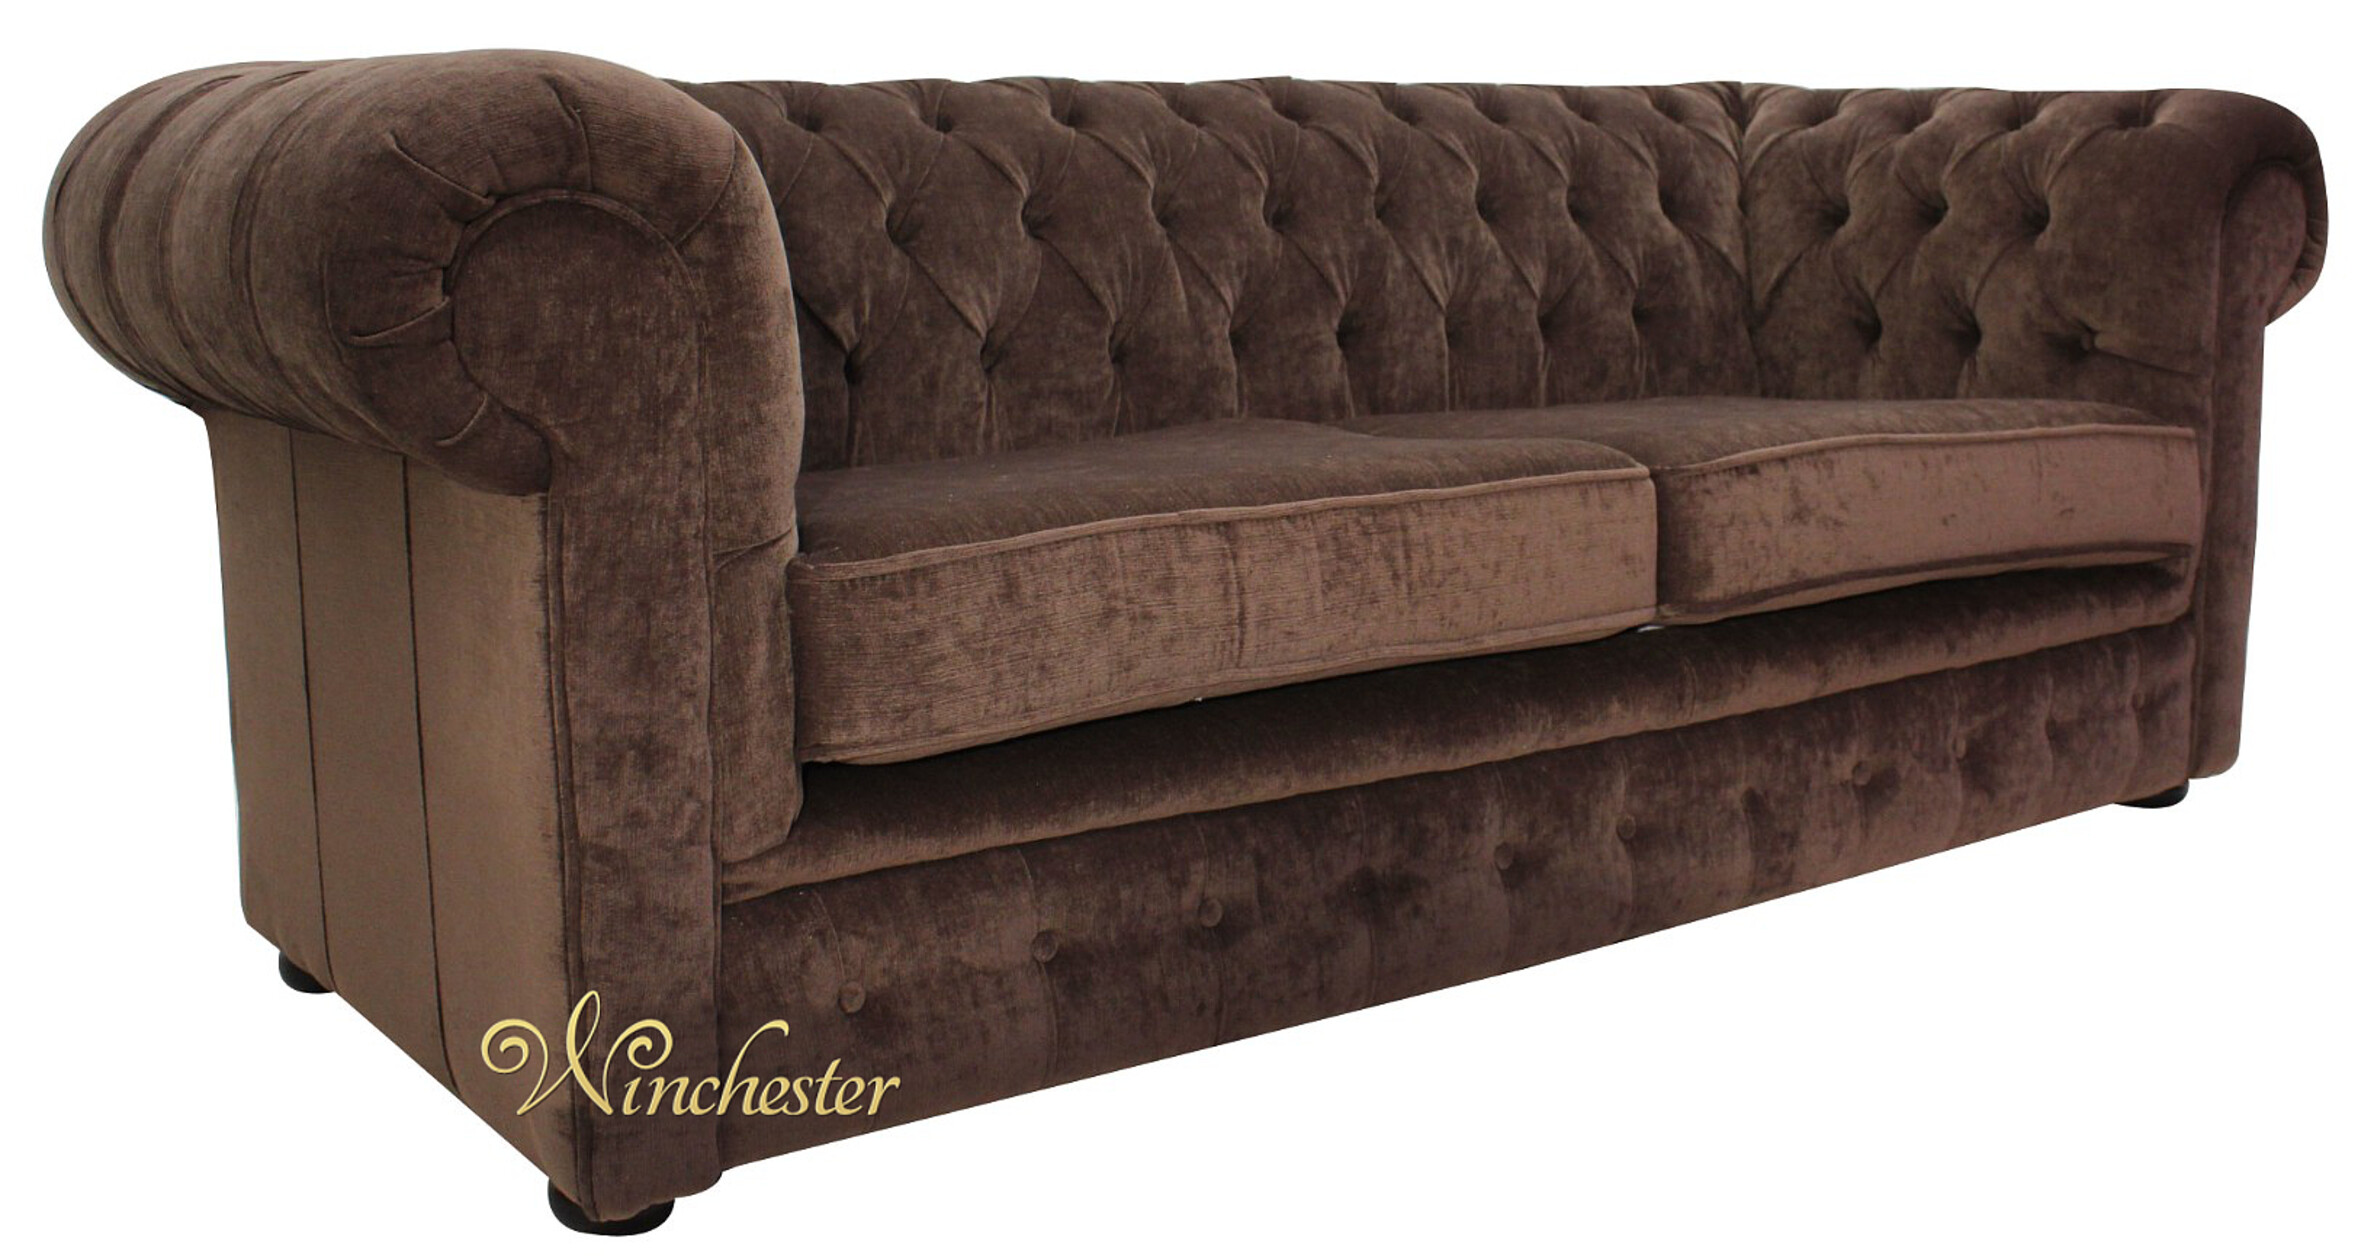 Chesterfield 3 Seater Settee Pimlico Chocolate Brown Sofa Offer